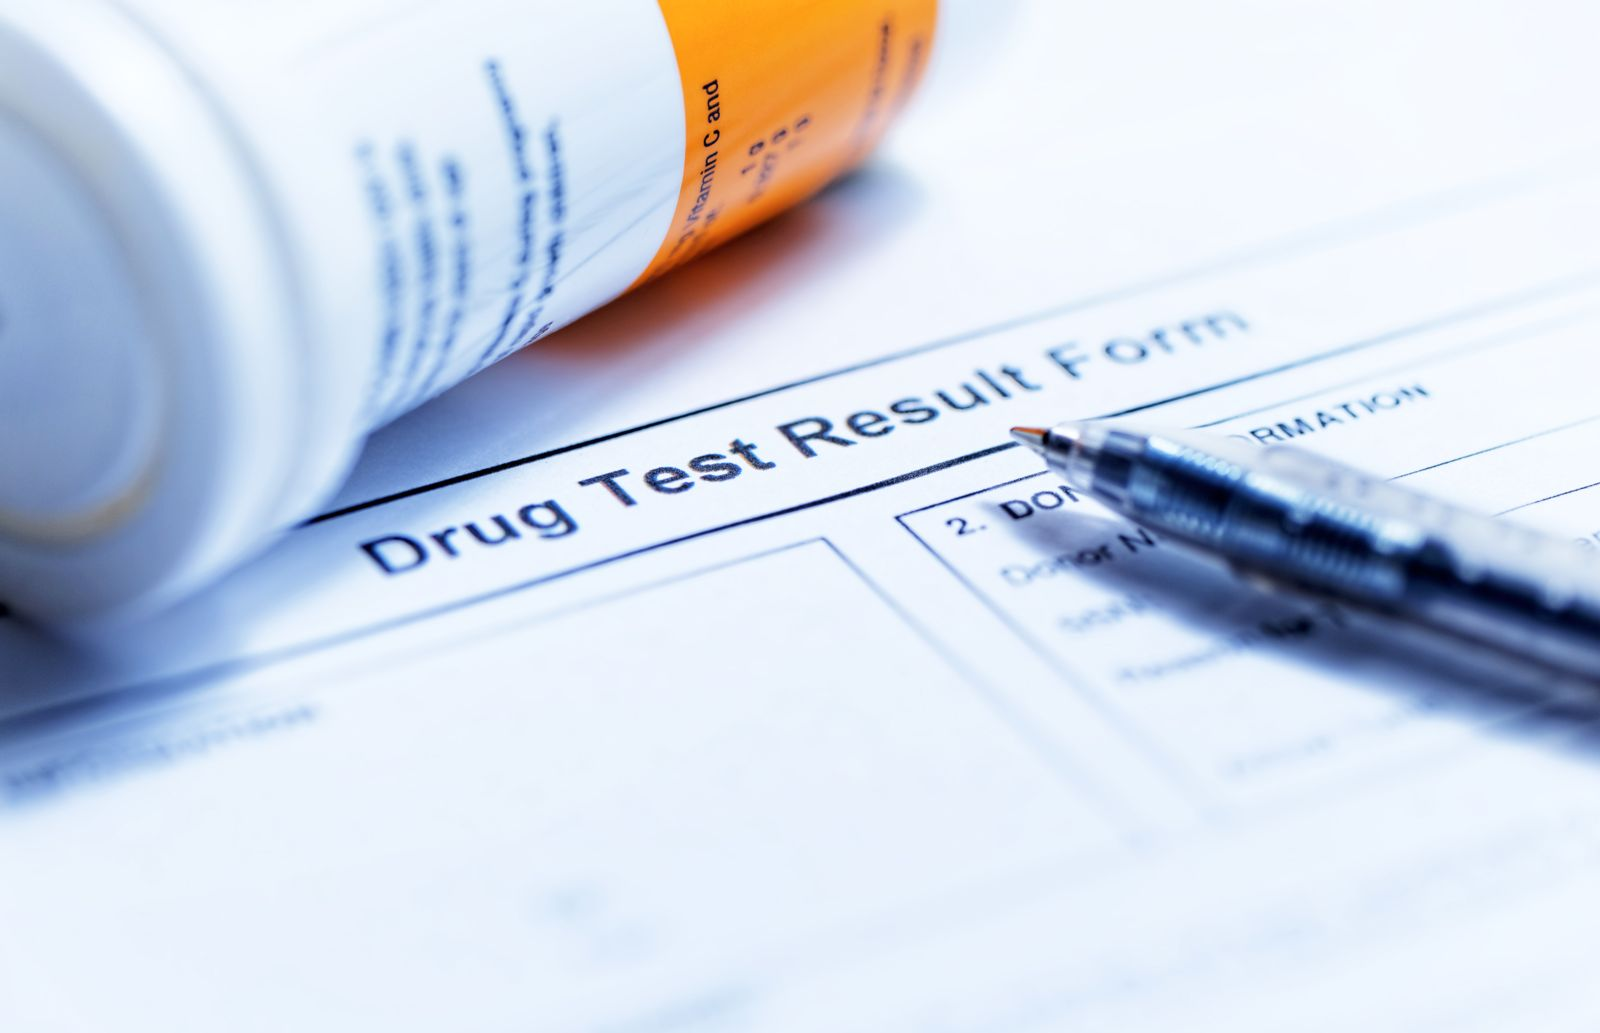 Drug Test Report Form